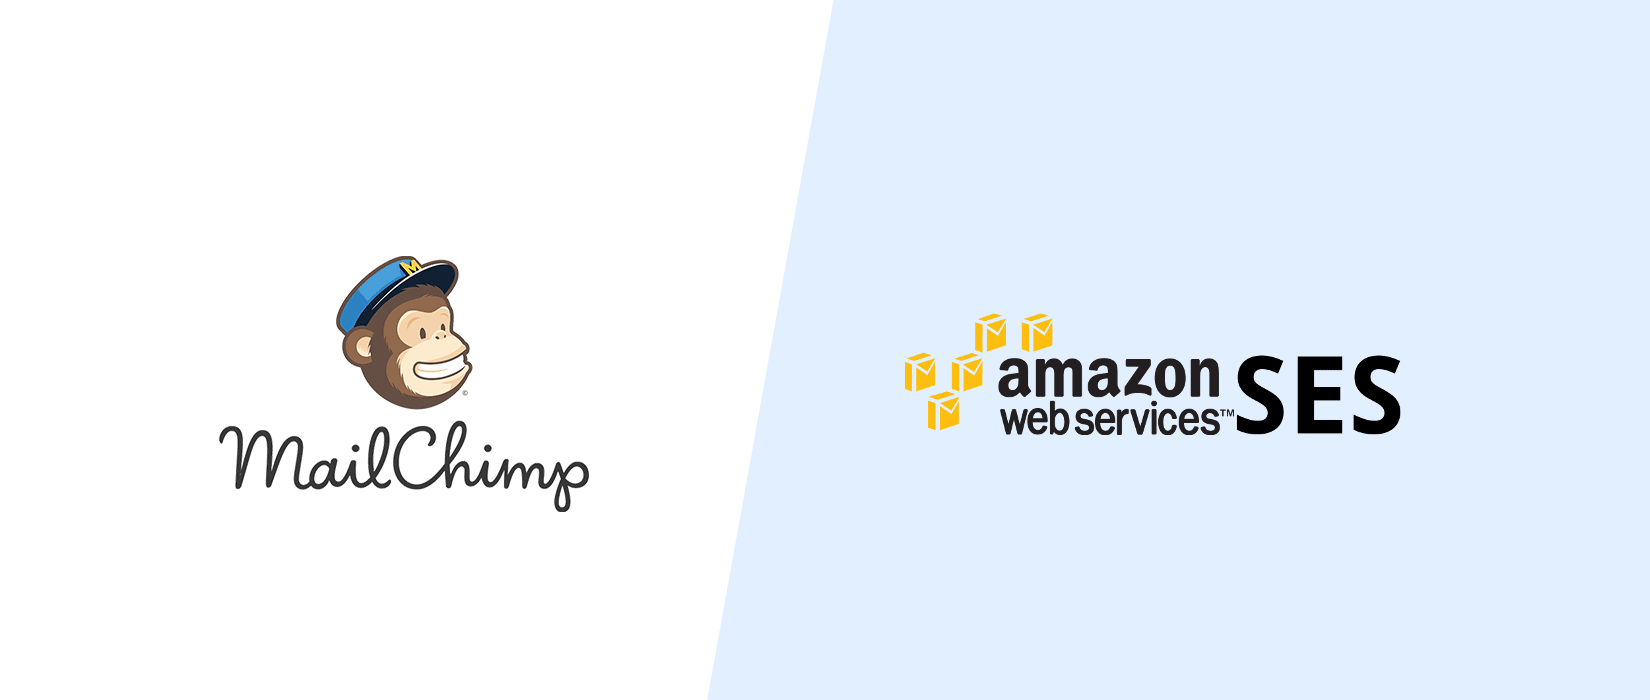 mailchimp vs amazon ses how i reduced my monthly bill by 92